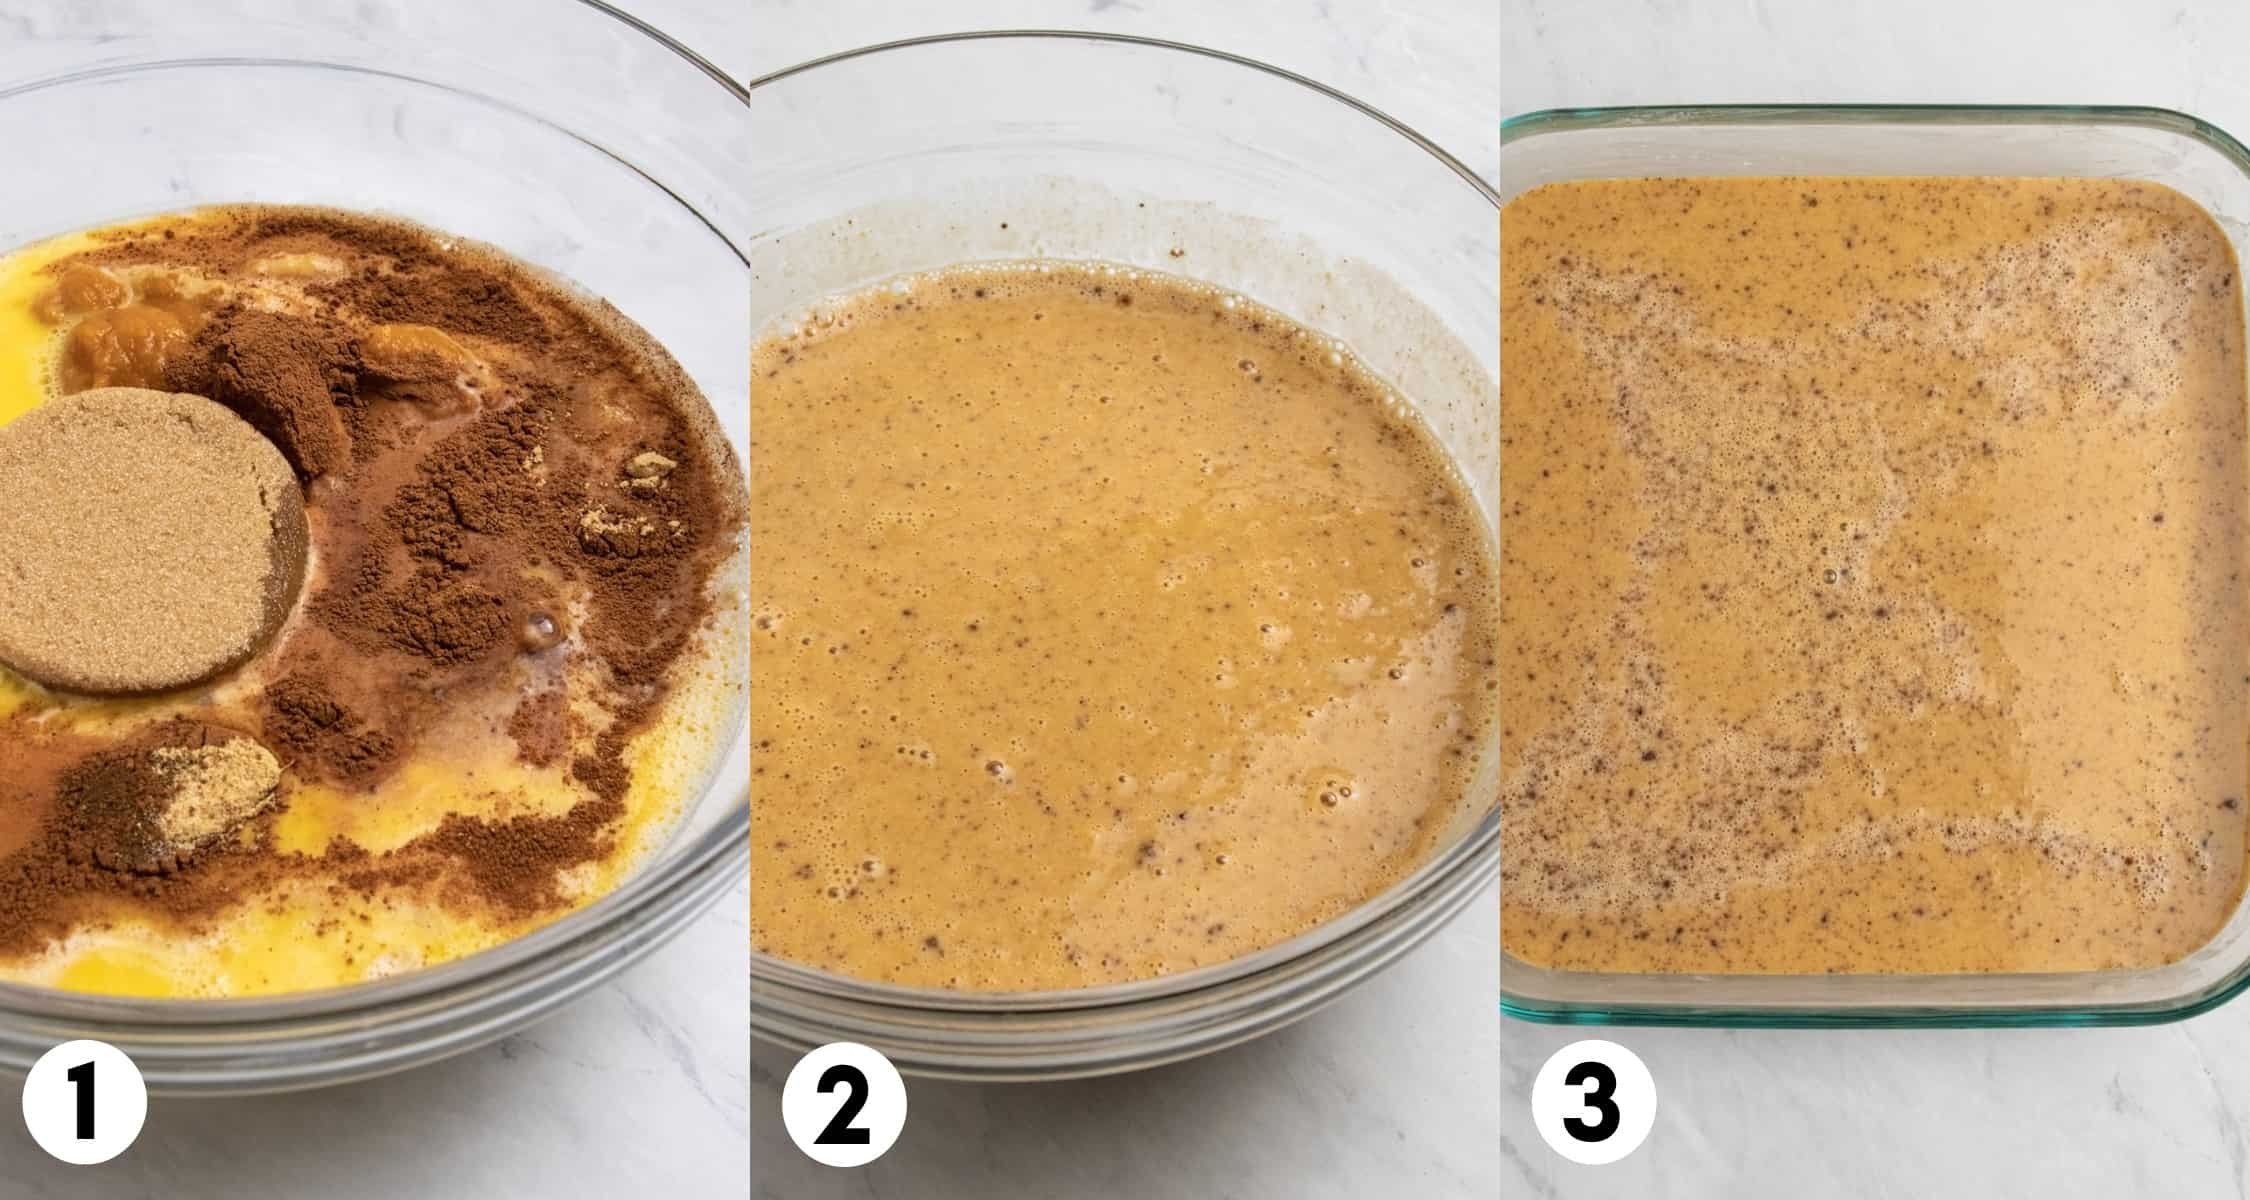 Eggs, pumpkin, milk and other ingredients in mixing bowl and then in baking dish.